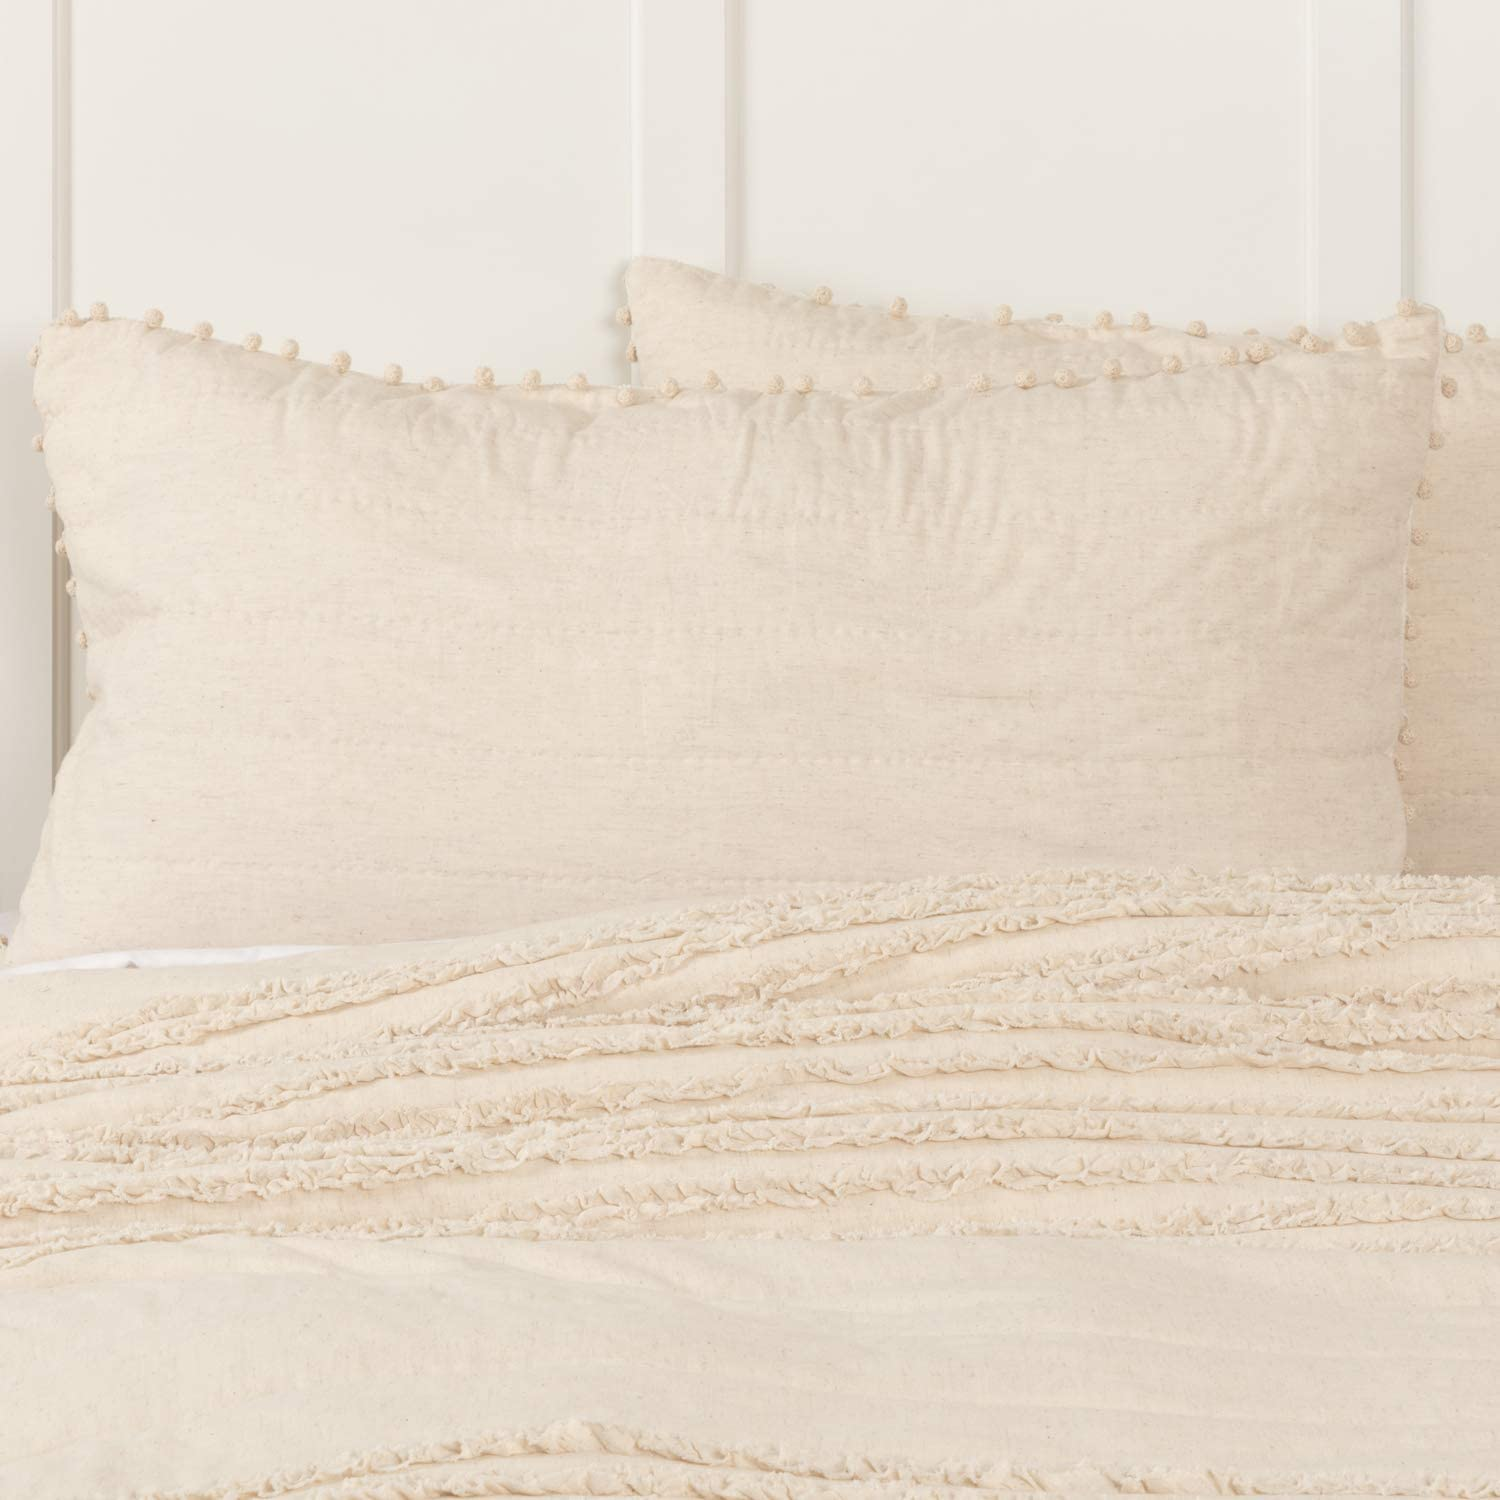 """Piper Classics Olivia King Sham Bed Pillow Cover w/Macrame Pompoms, 21"""" x 37"""", Quilted, Natural Cream Linen/Cotton. Vintage, Cottage, Boho, Farmhouse Bedding"""